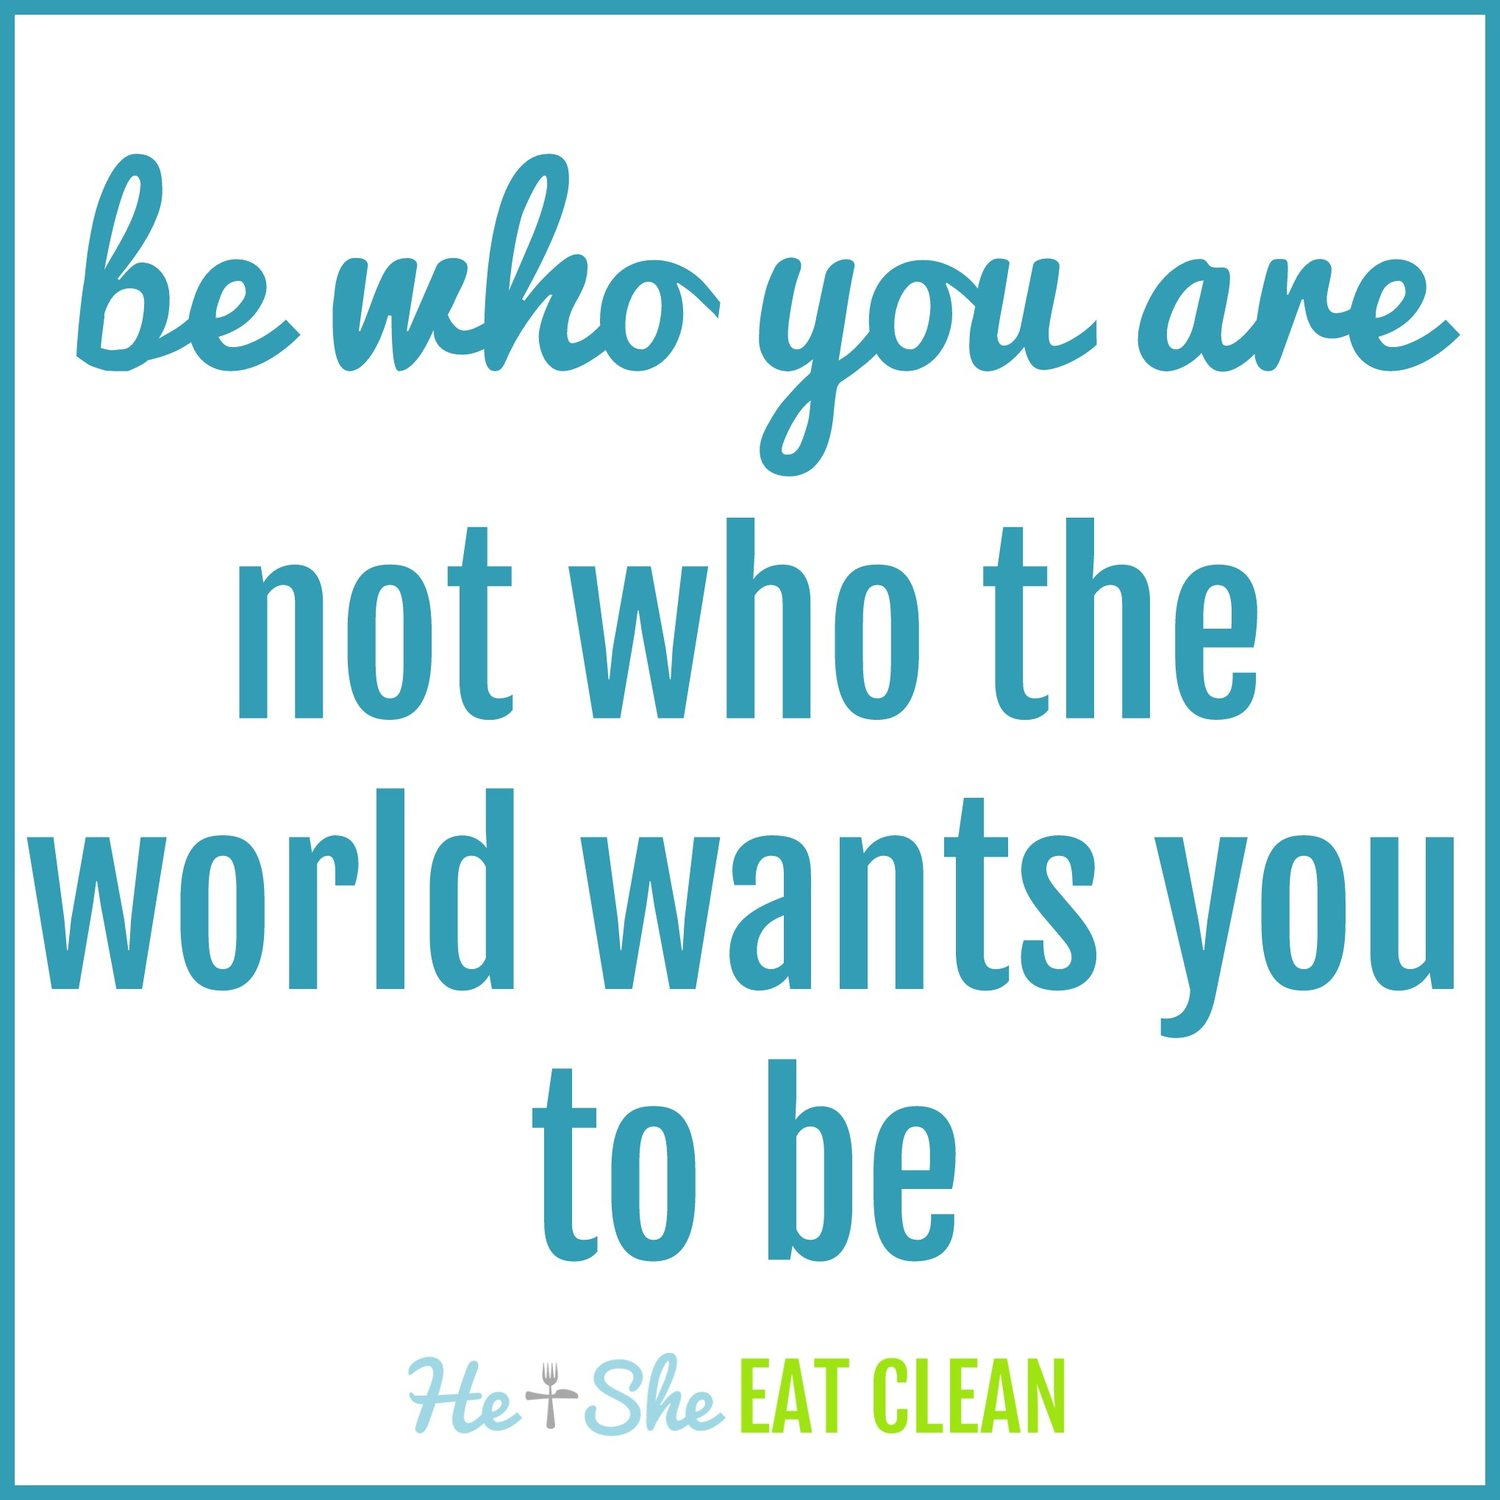 be-who-you-are-not-who-the-world-wants-you-to-be-wallpaper-wp5204485